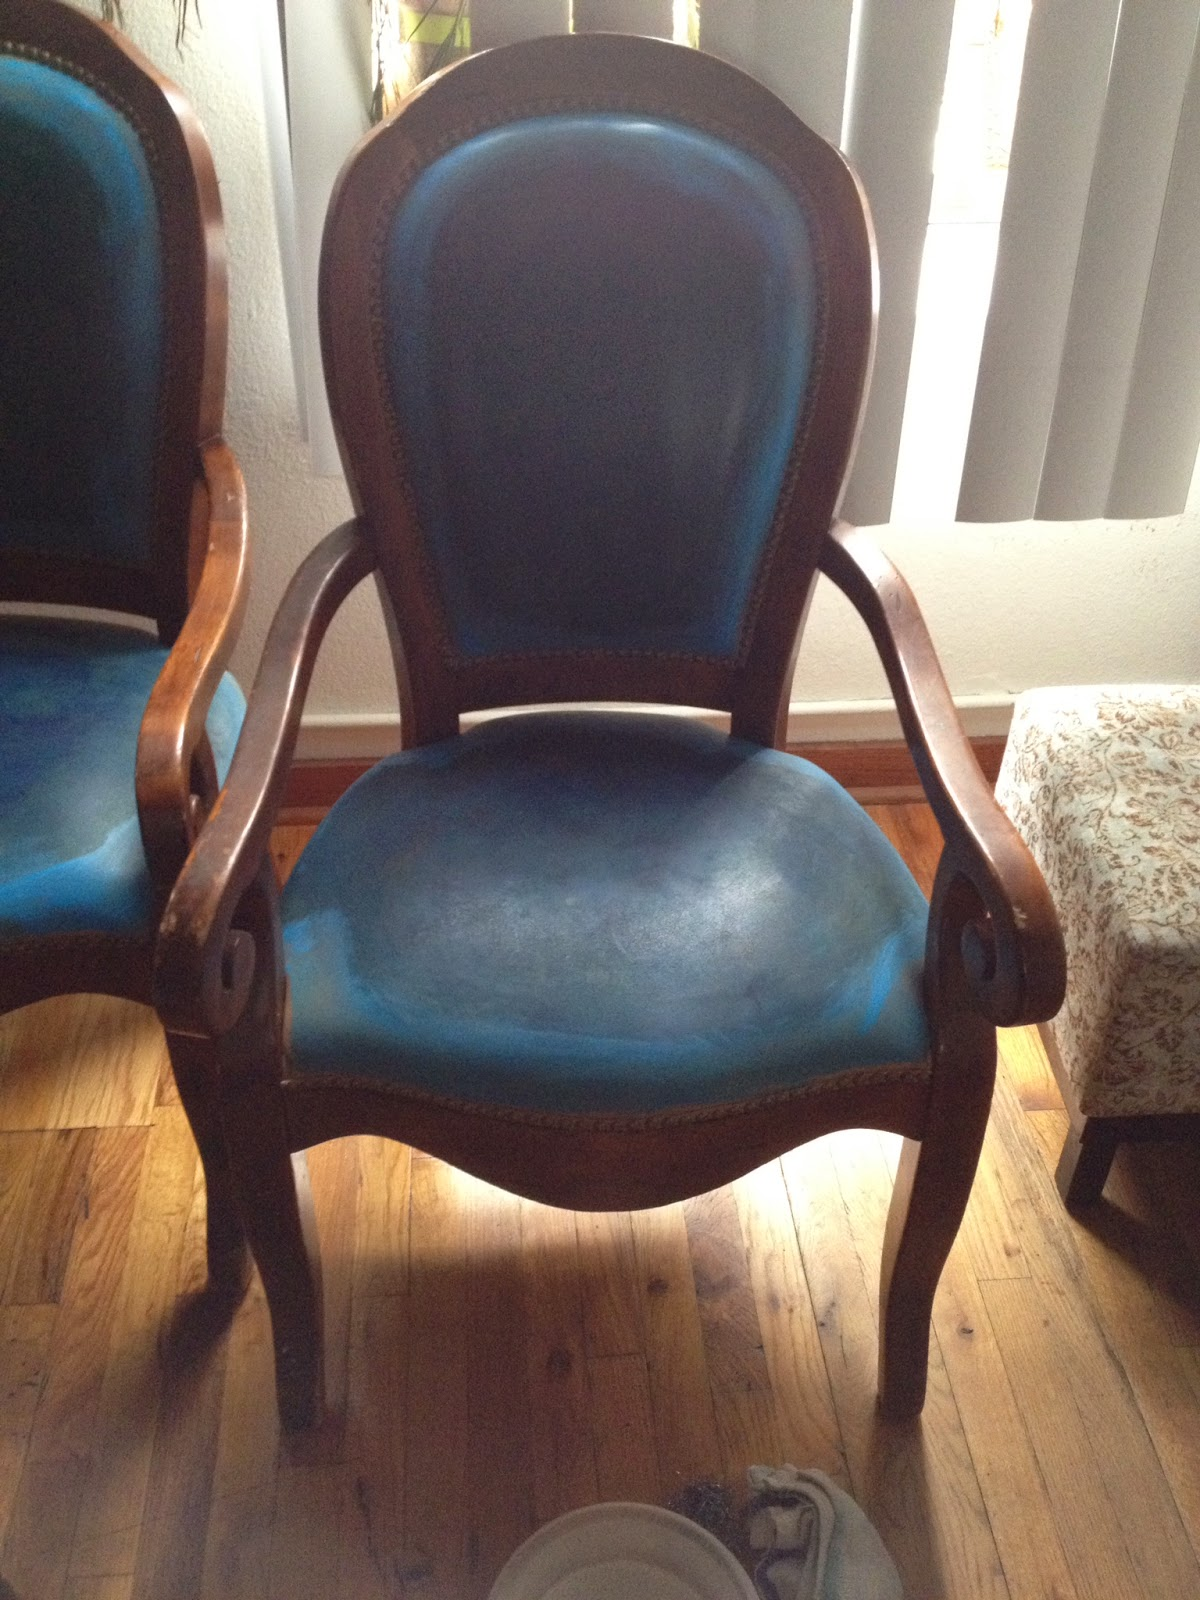 Amazing Once I Got The Chairs, I Decided To Try Sanding Off The Blue Paint And Get  Back To The Original Leather. What I Got Was A Suede Chair That Looks  Better Than ...